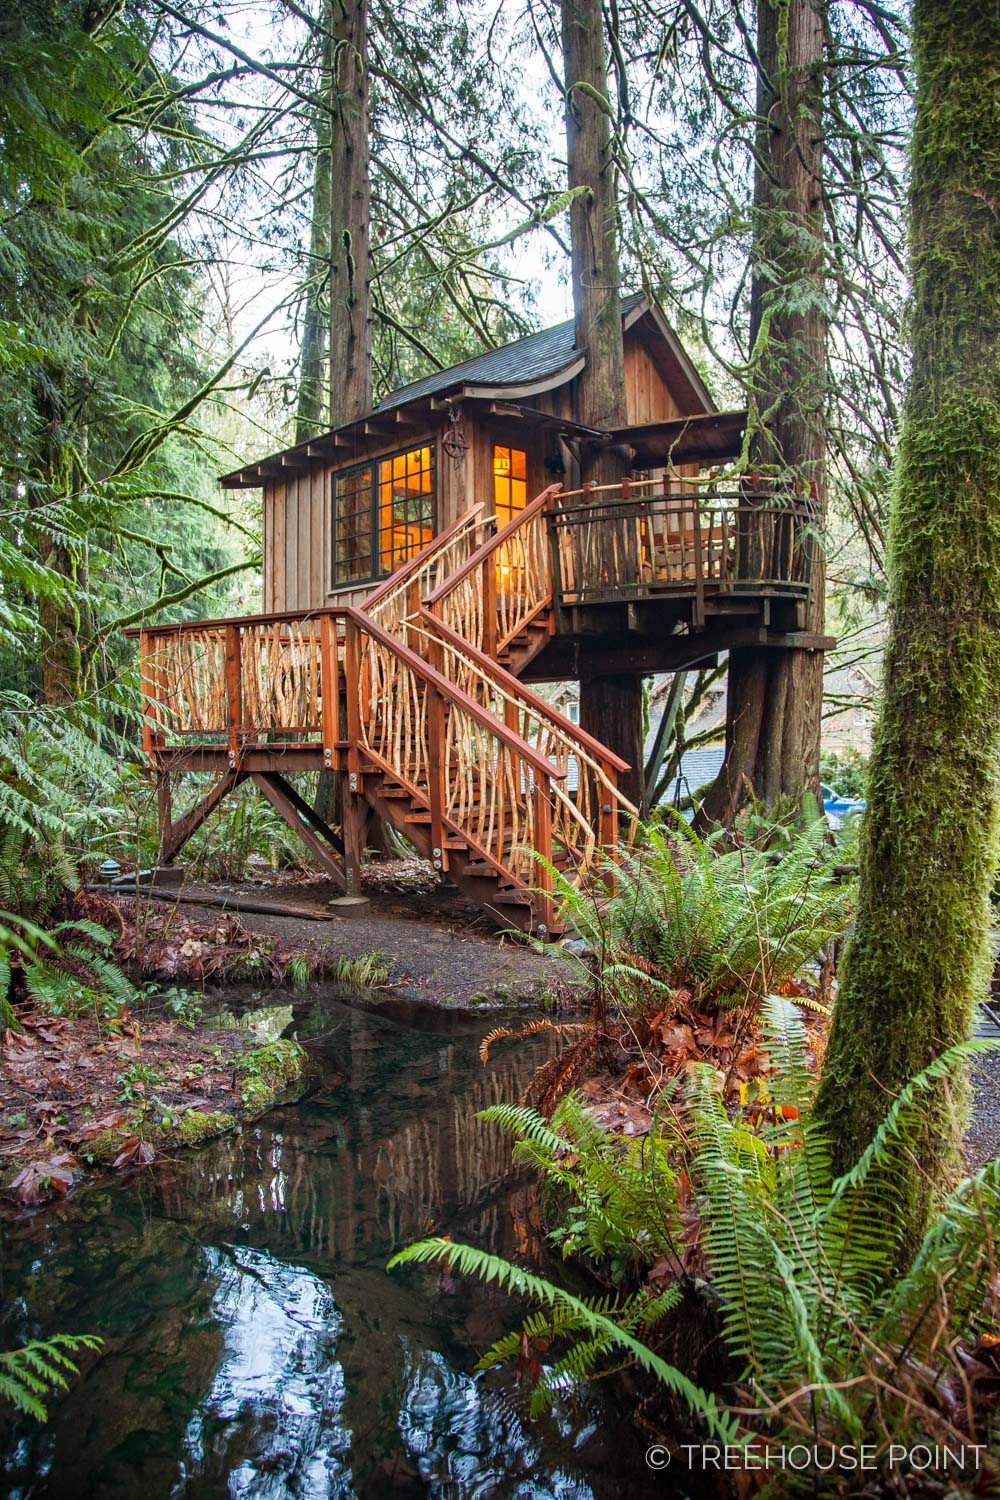 Upper_Pond_TreeHouse_Point_2018-11.jpg